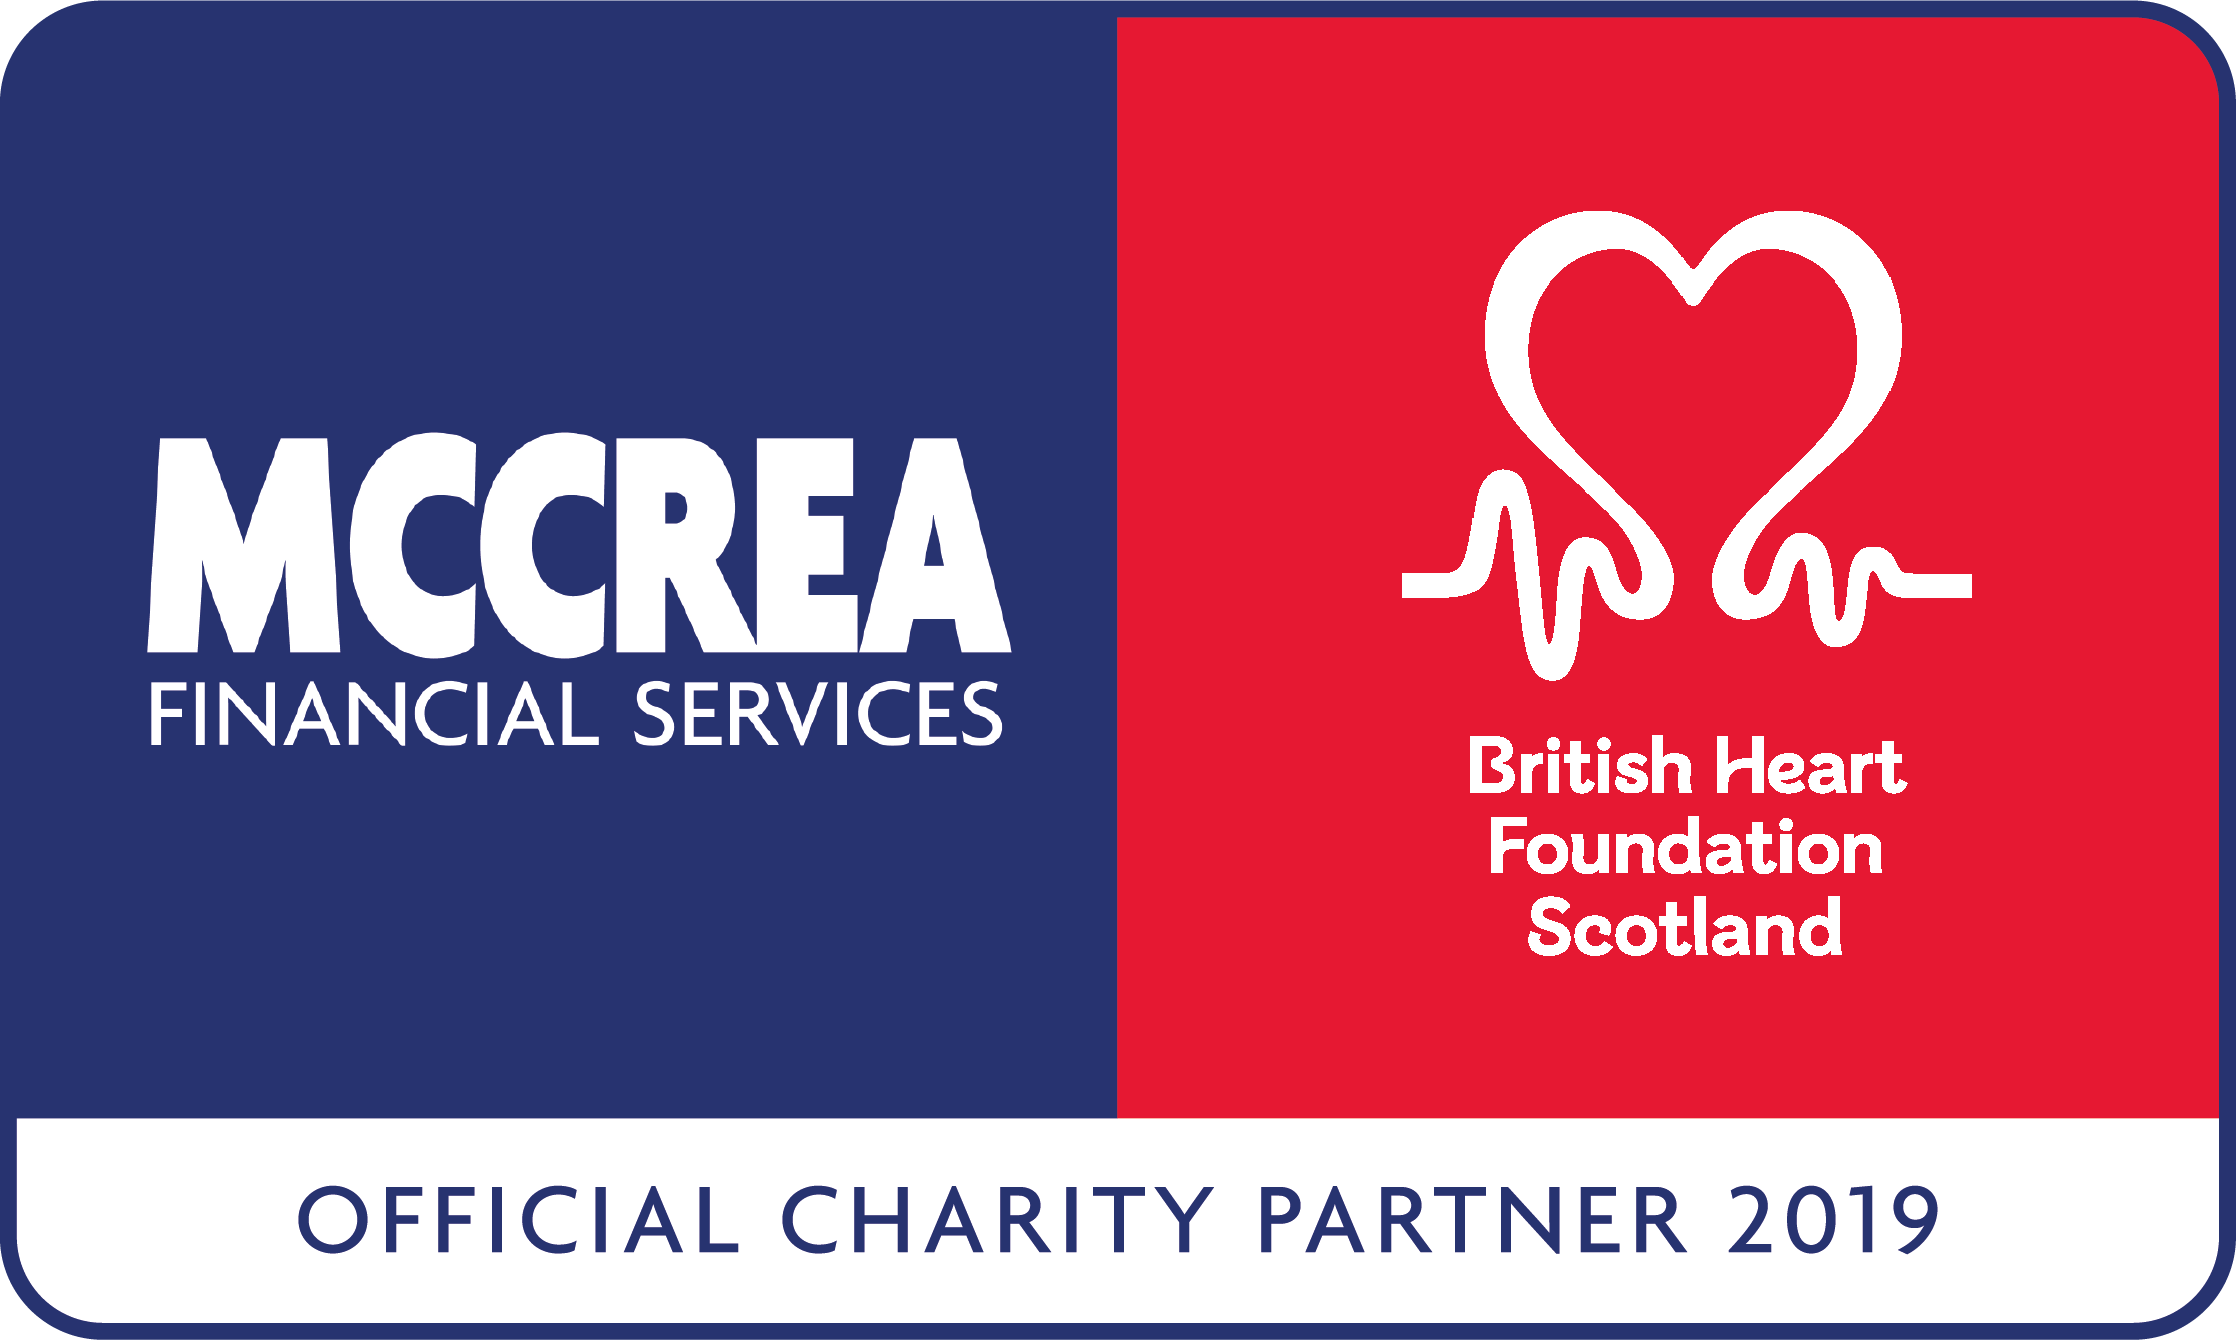 McCrea Financial Services and British Heart Foundation